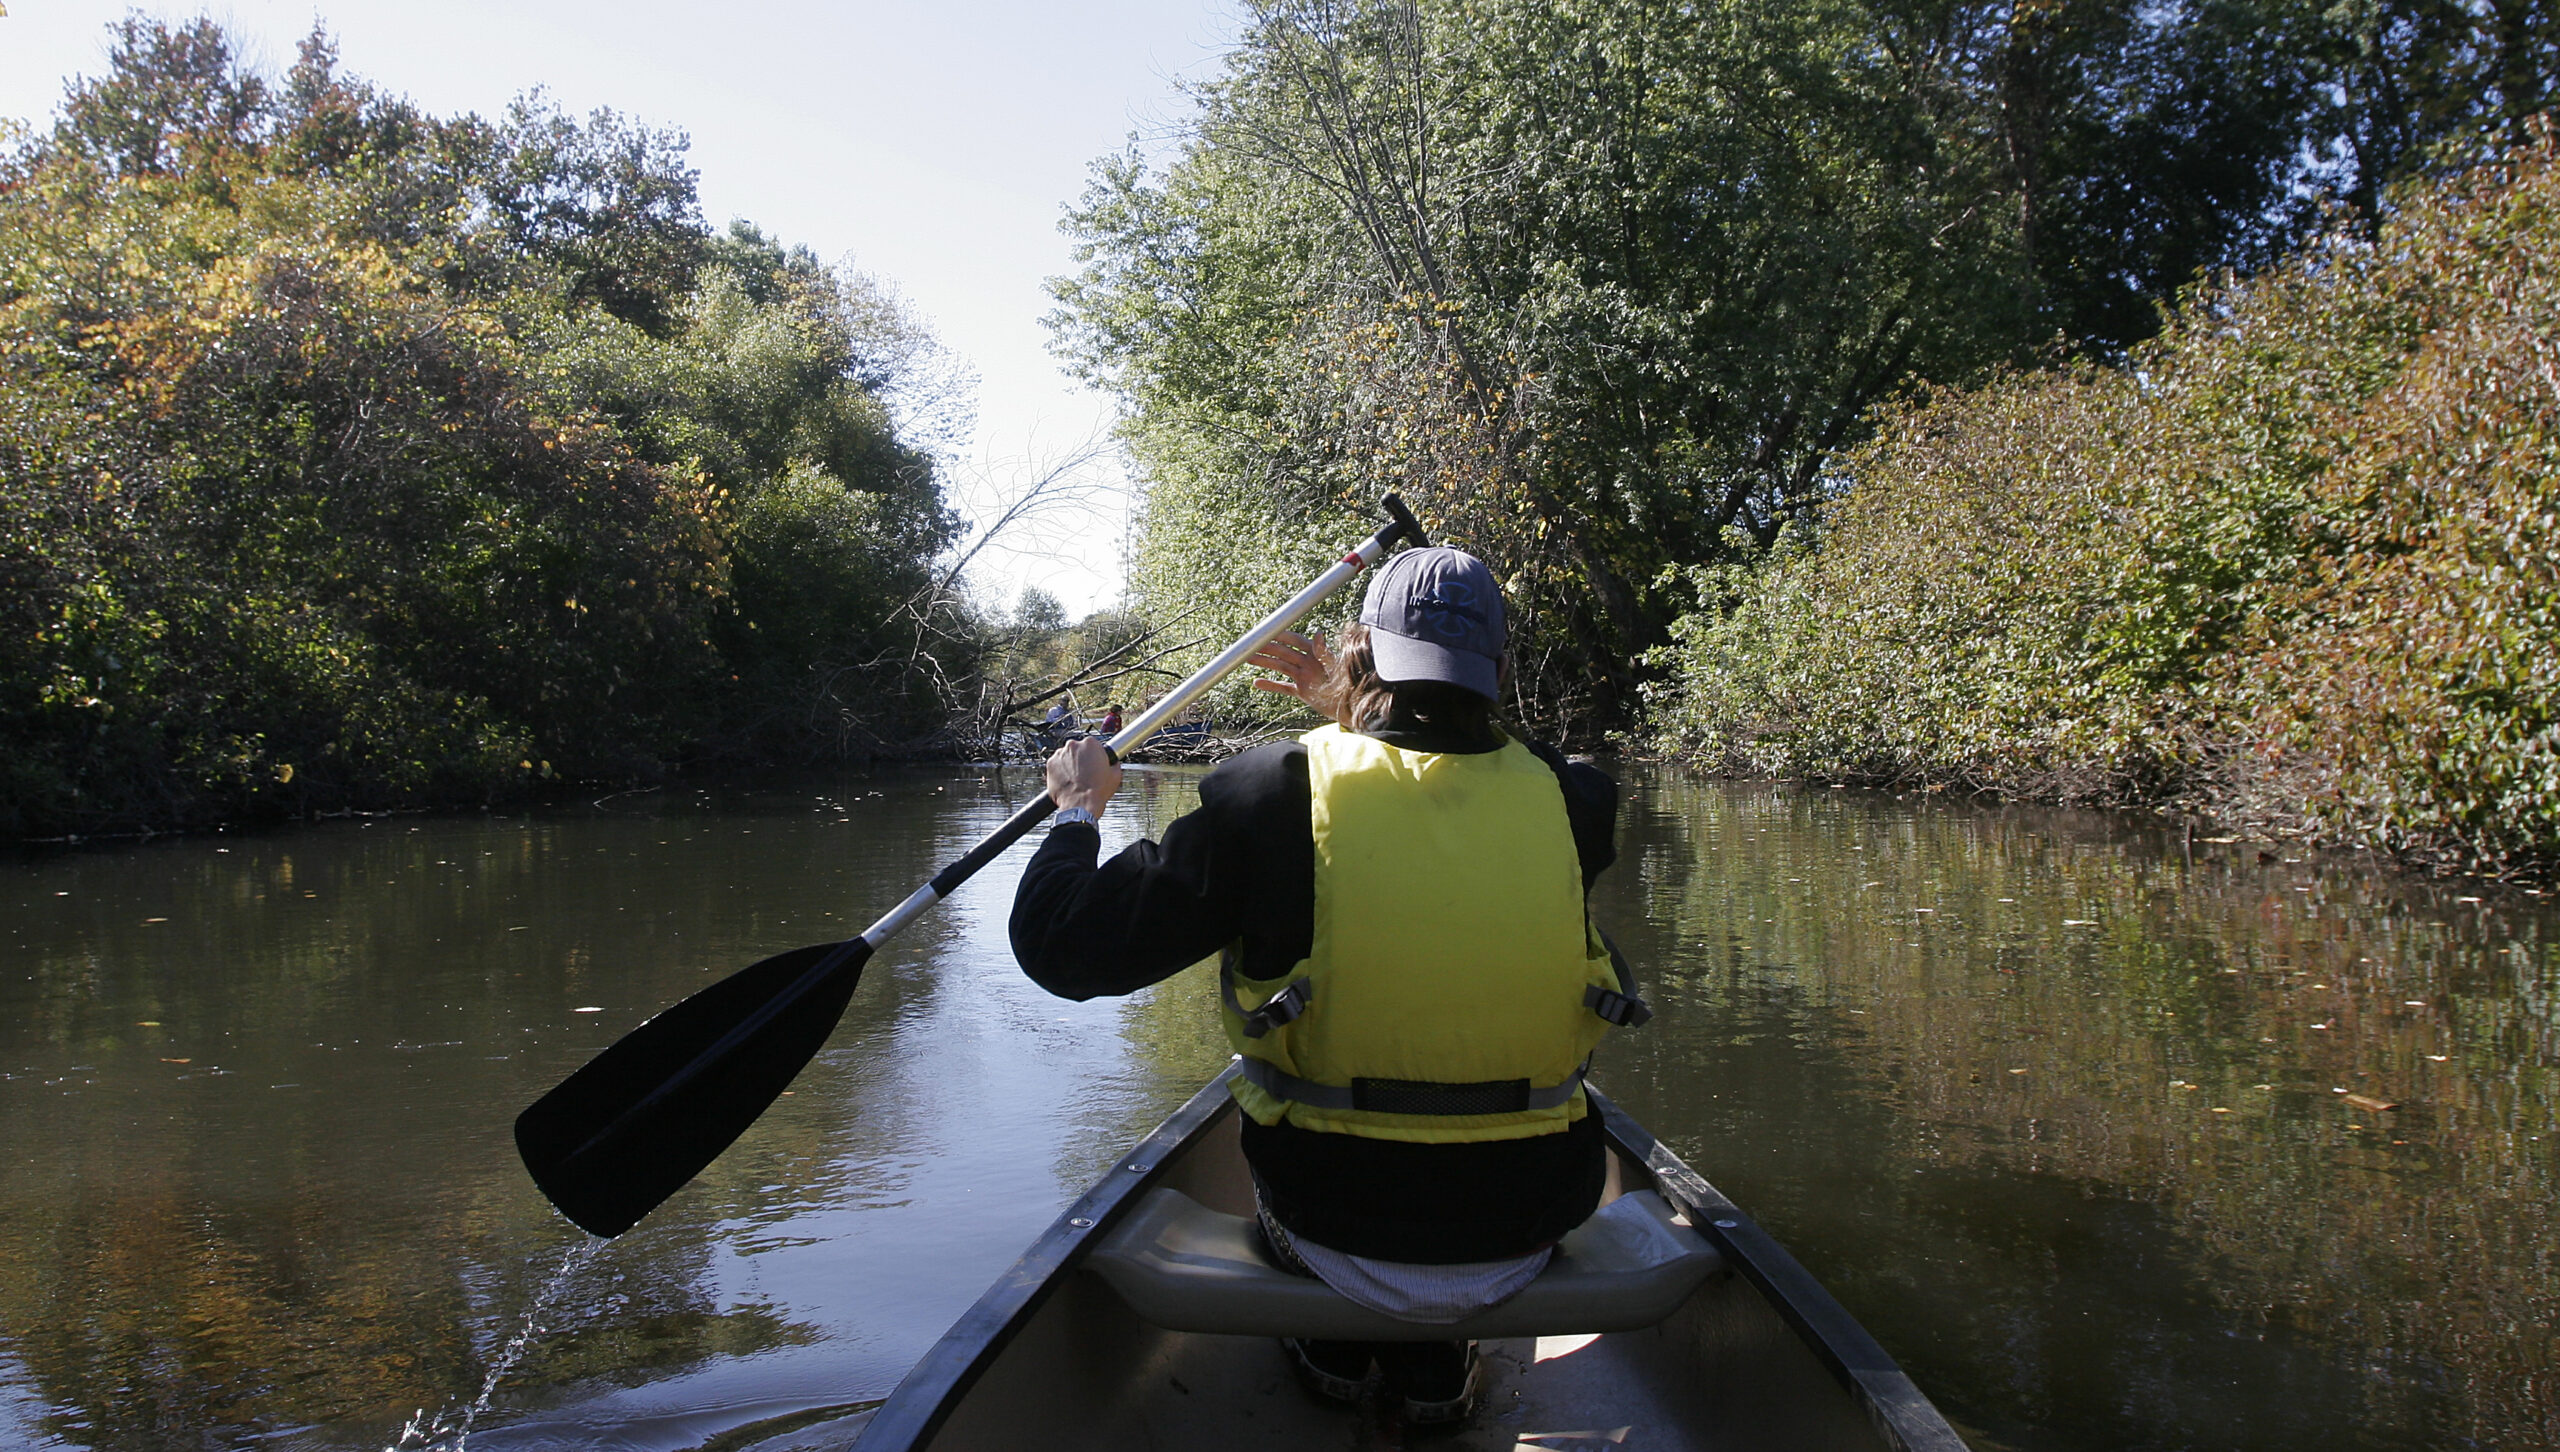 Canoeing down the Neponset; back of paddler in mid-stroke